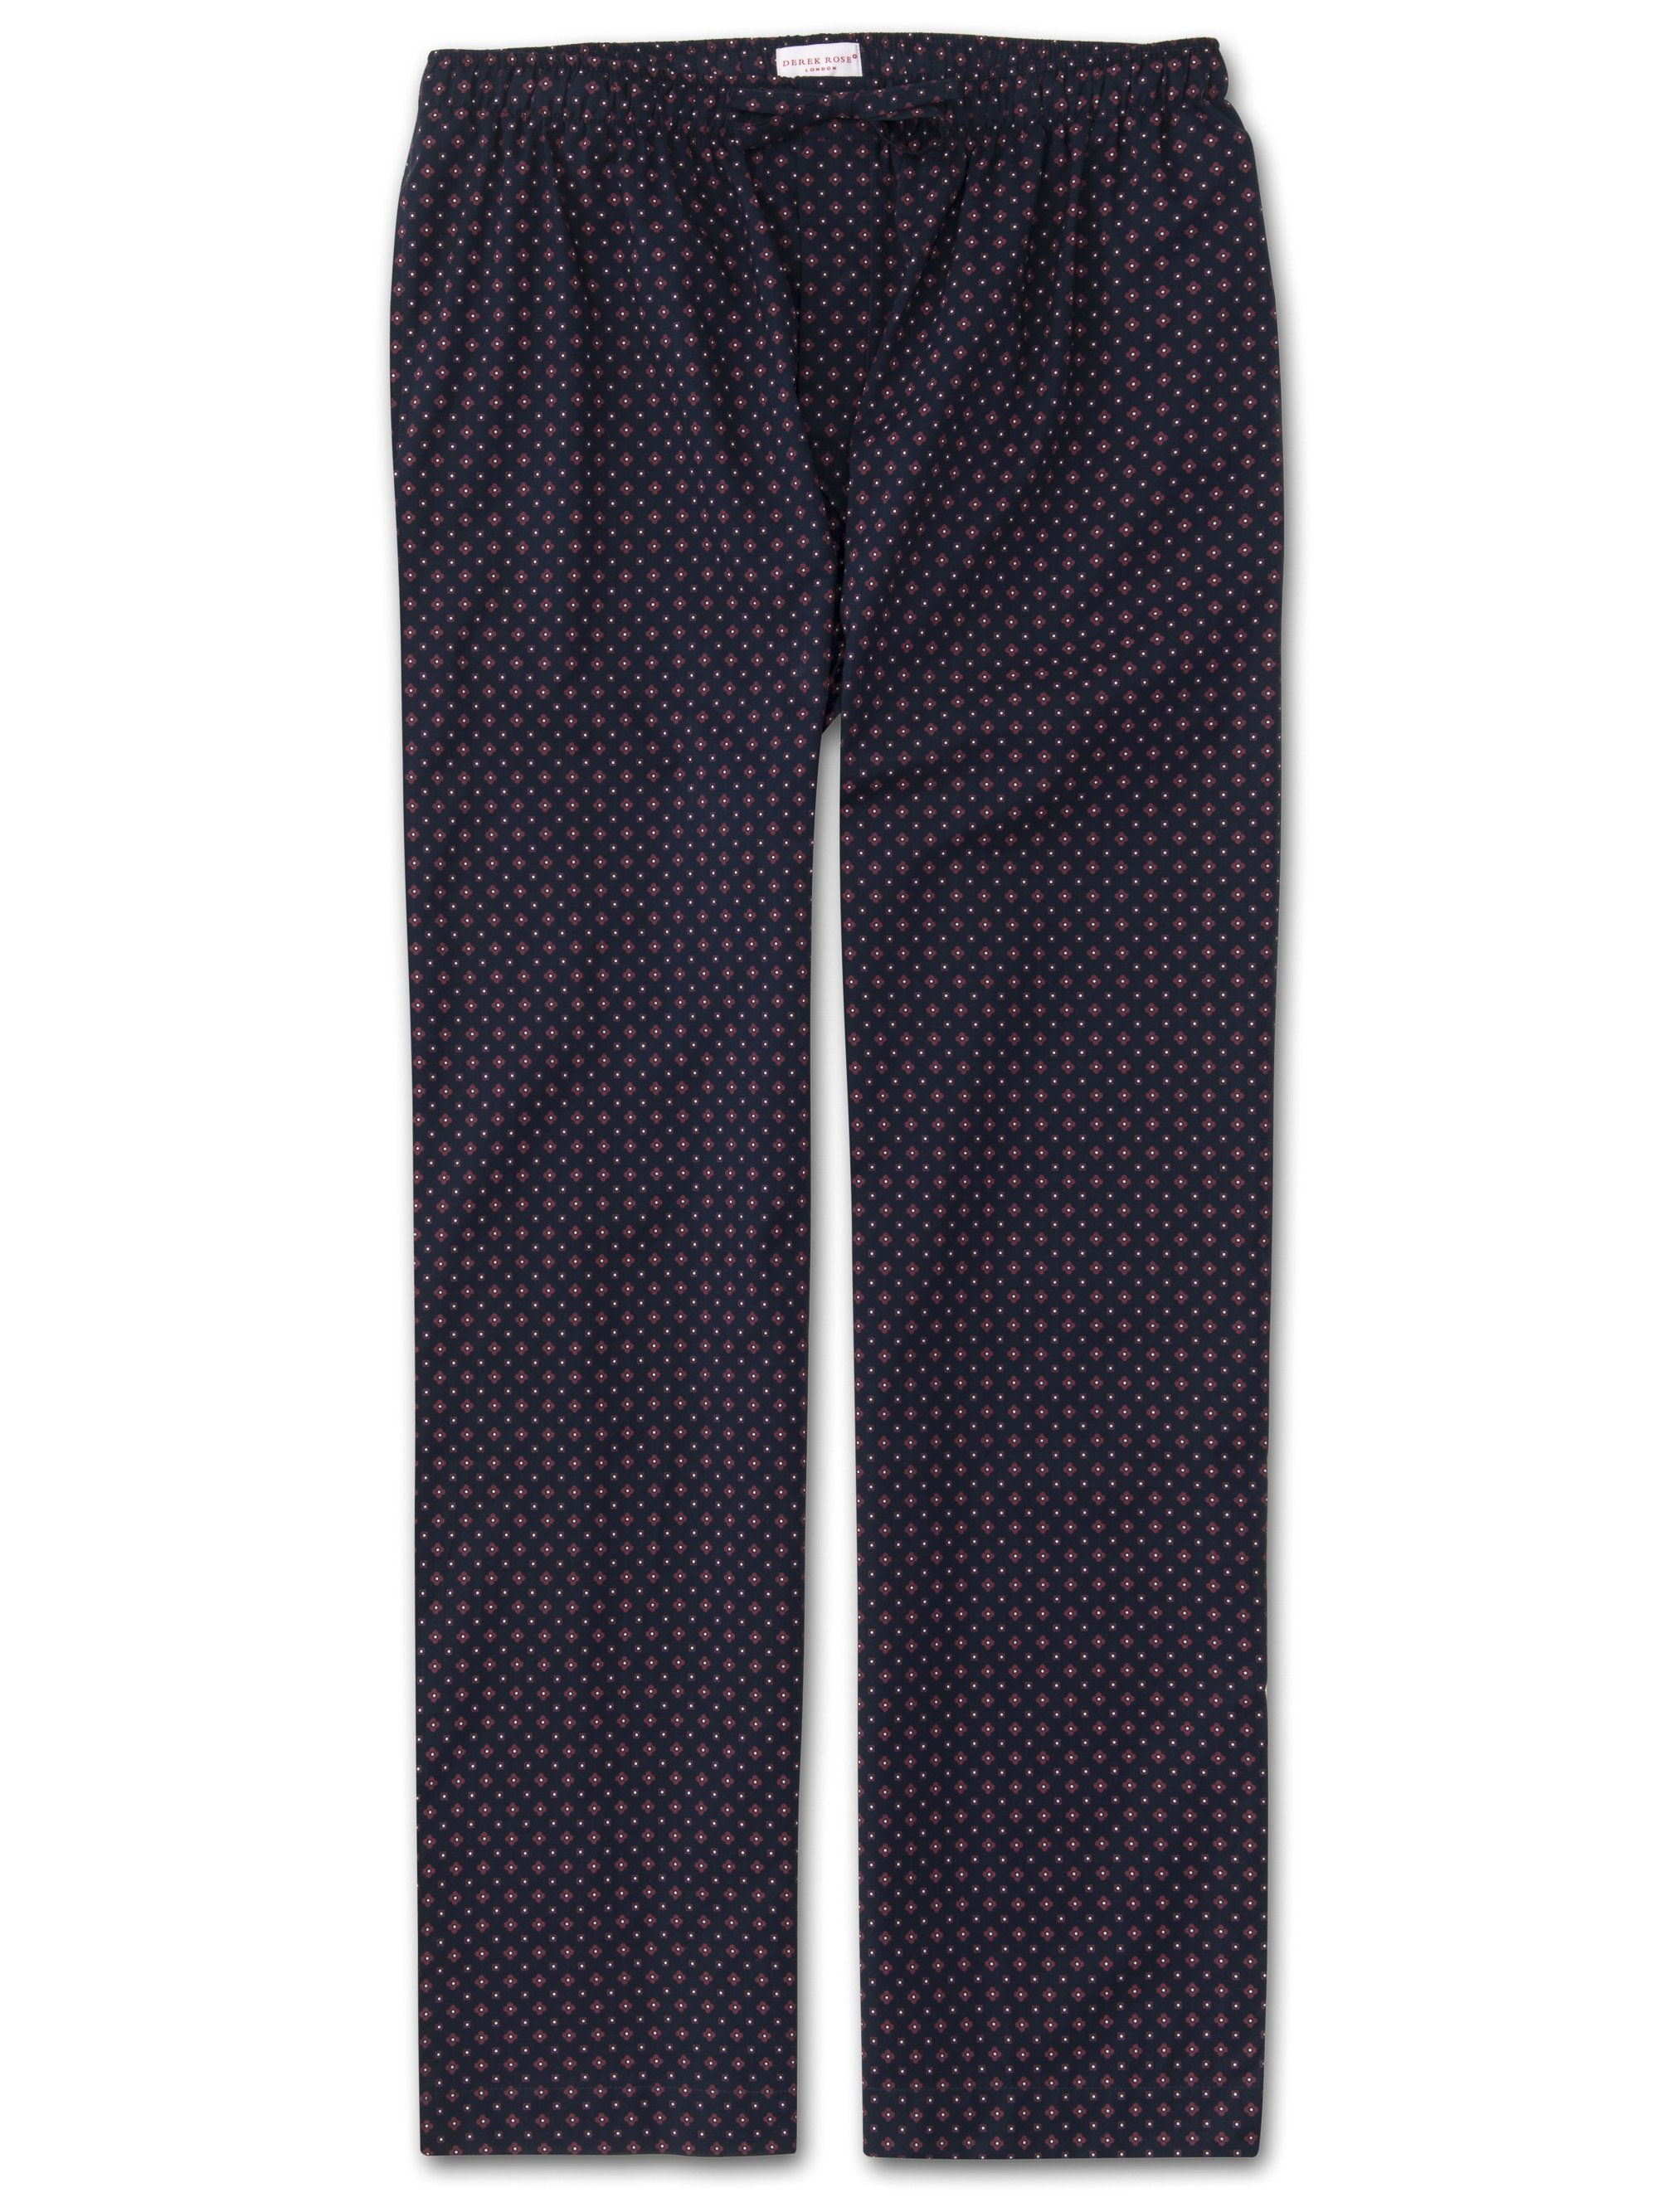 Men's Lounge Trousers Nelson 72 Cotton Batiste Navy